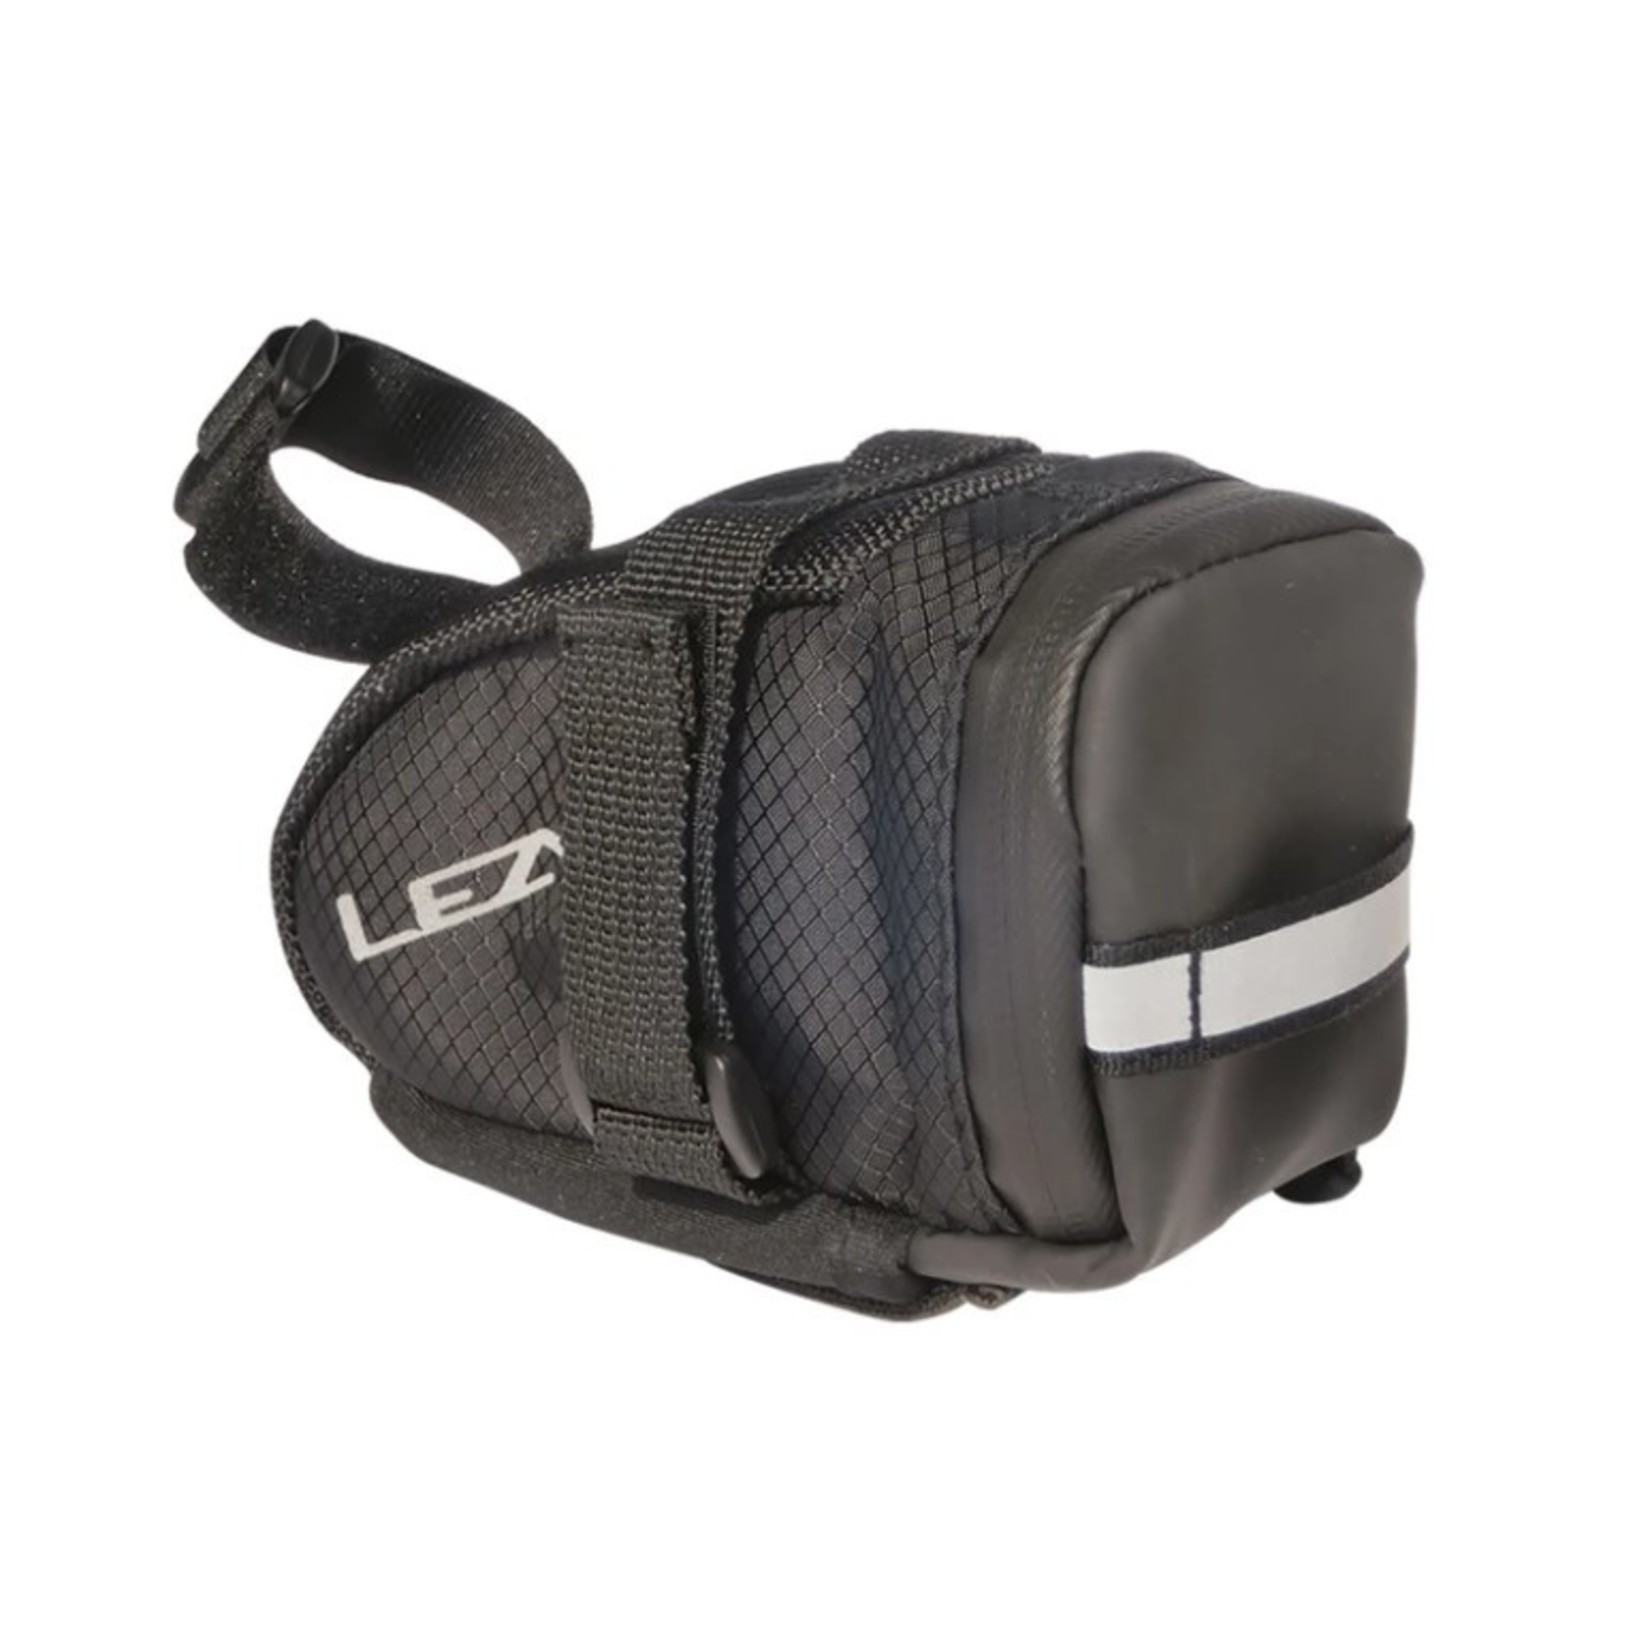 Lezyne M-Caddy Sport Wedge Bag Flat Kit